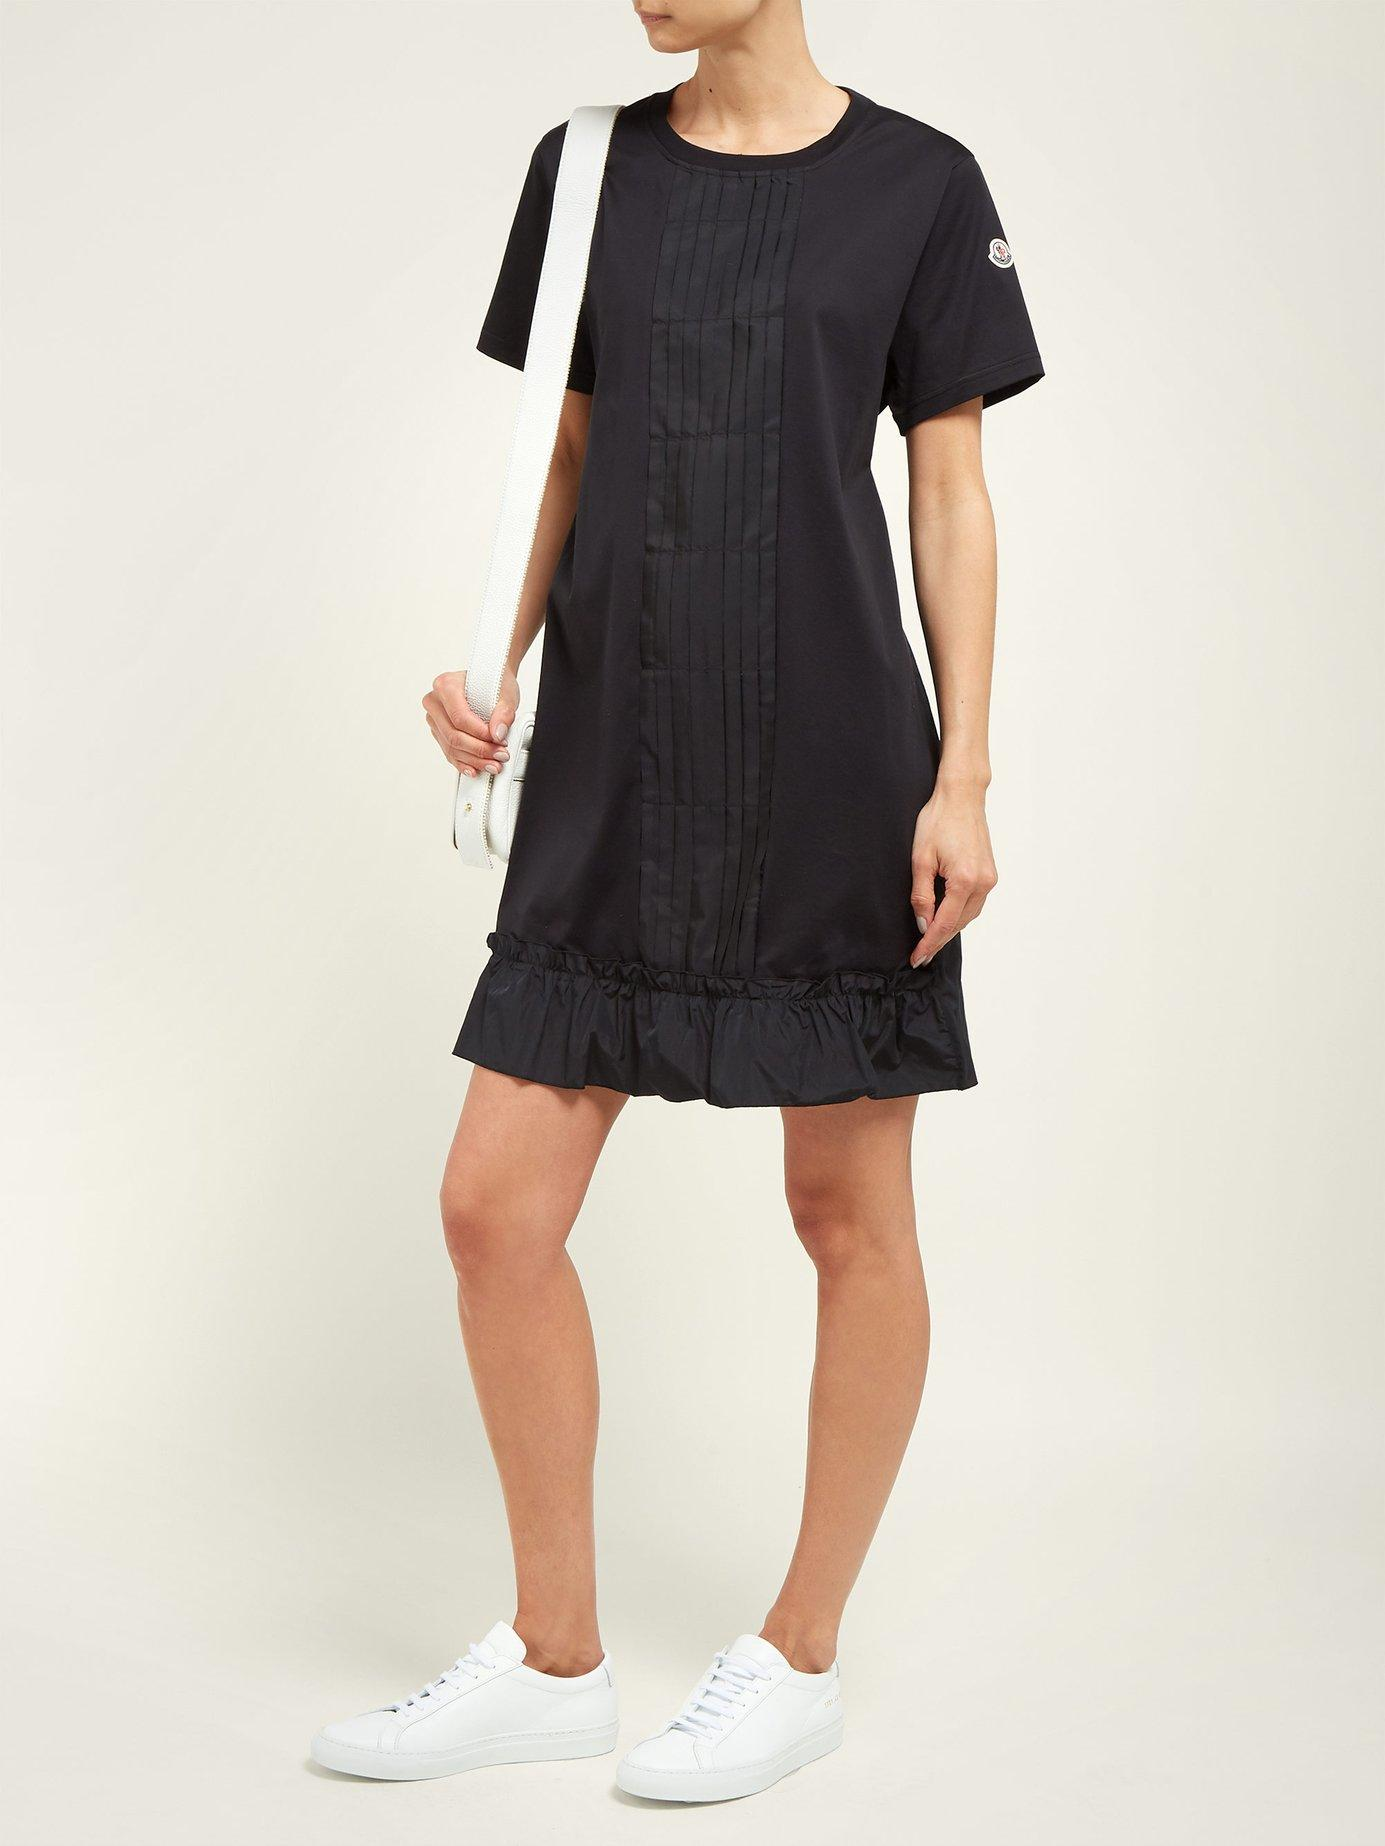 ed4dc37298ea Lyst - Moncler Abito Round Neck Cotton Jersey Dress in Black